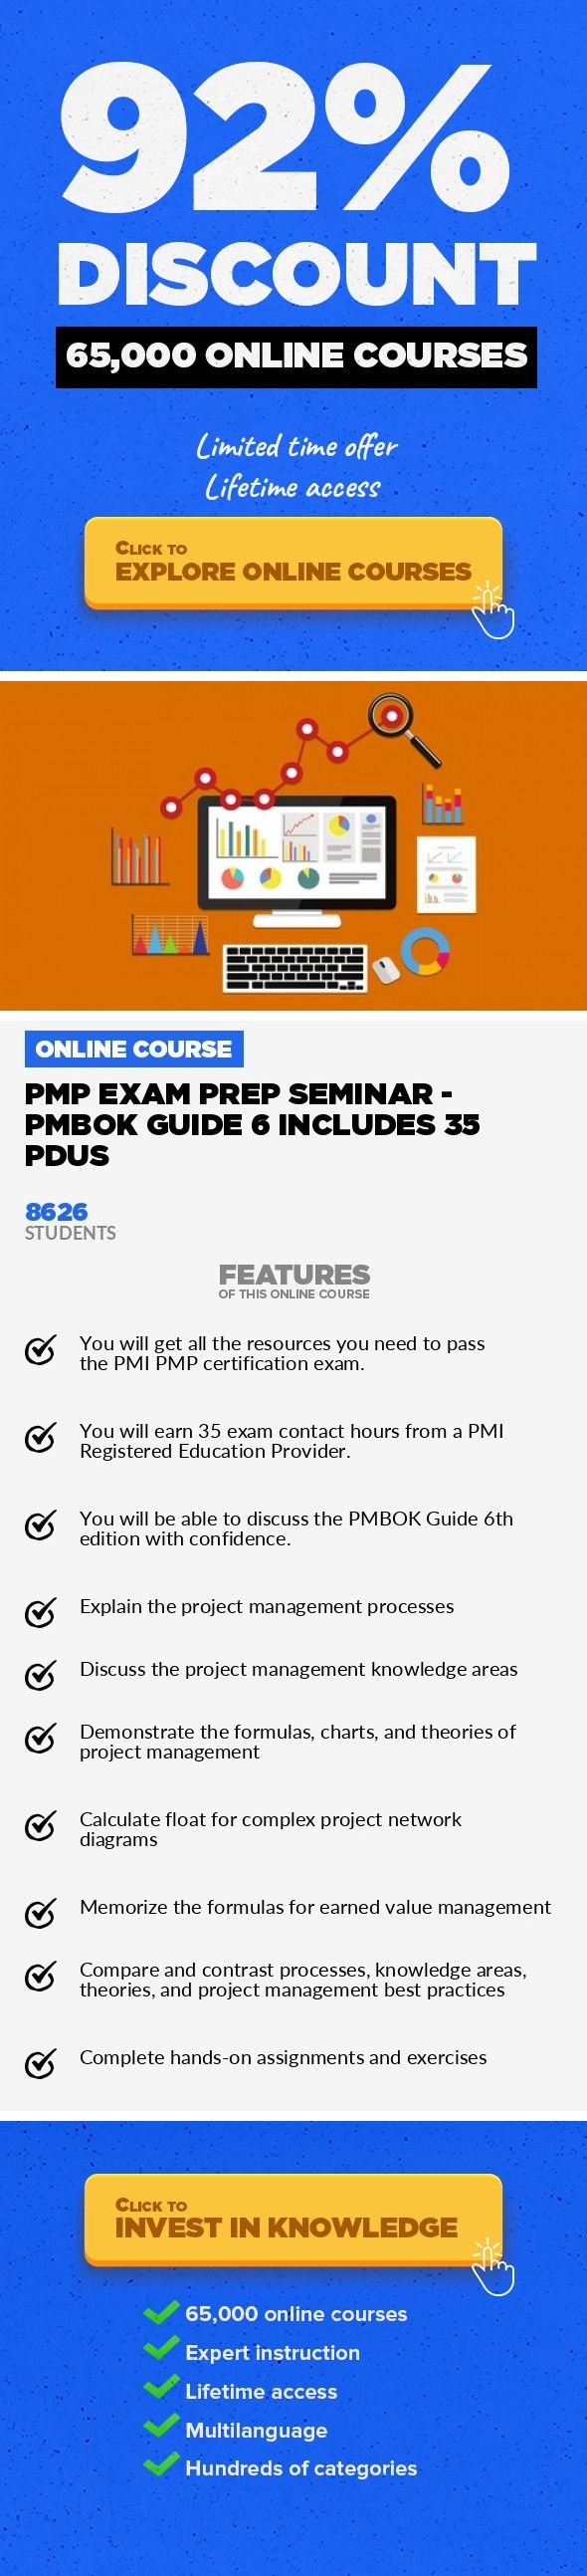 Pmp Exam Prep Seminar Pmbok Guide 6 Includes 35 Pdus Project